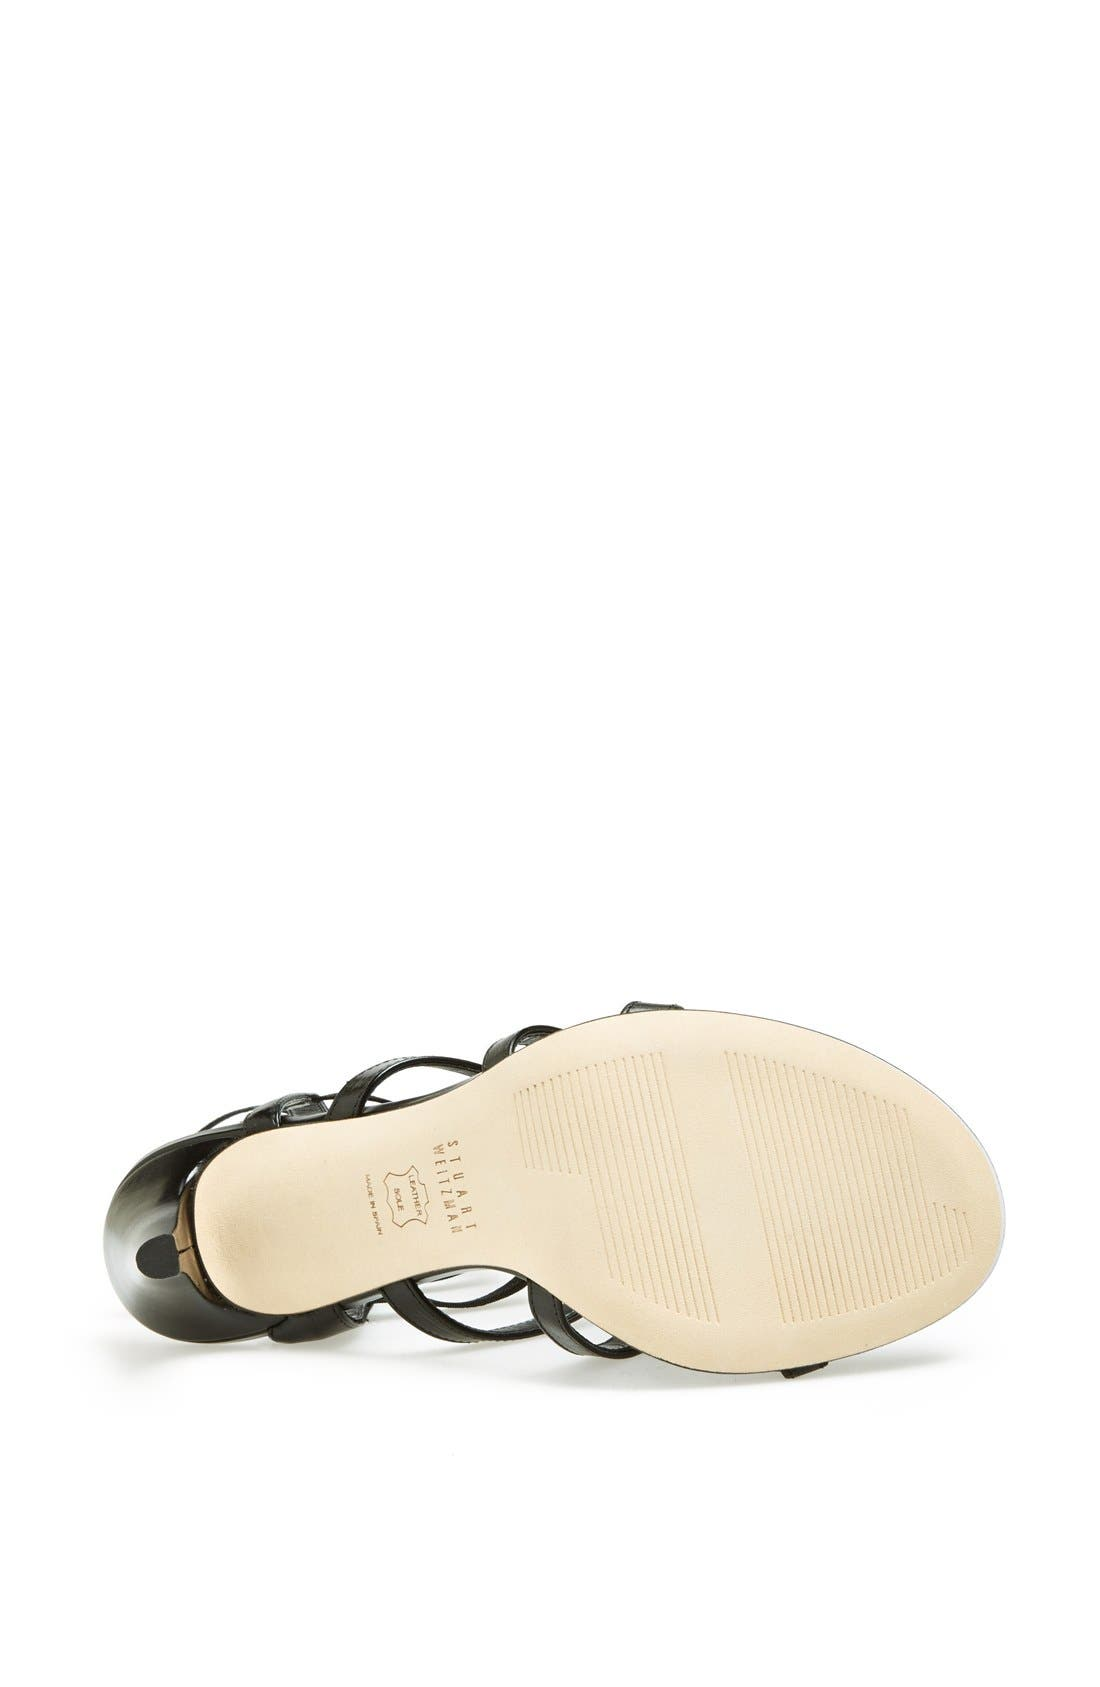 'Cleo' Sandal,                             Alternate thumbnail 3, color,                             001